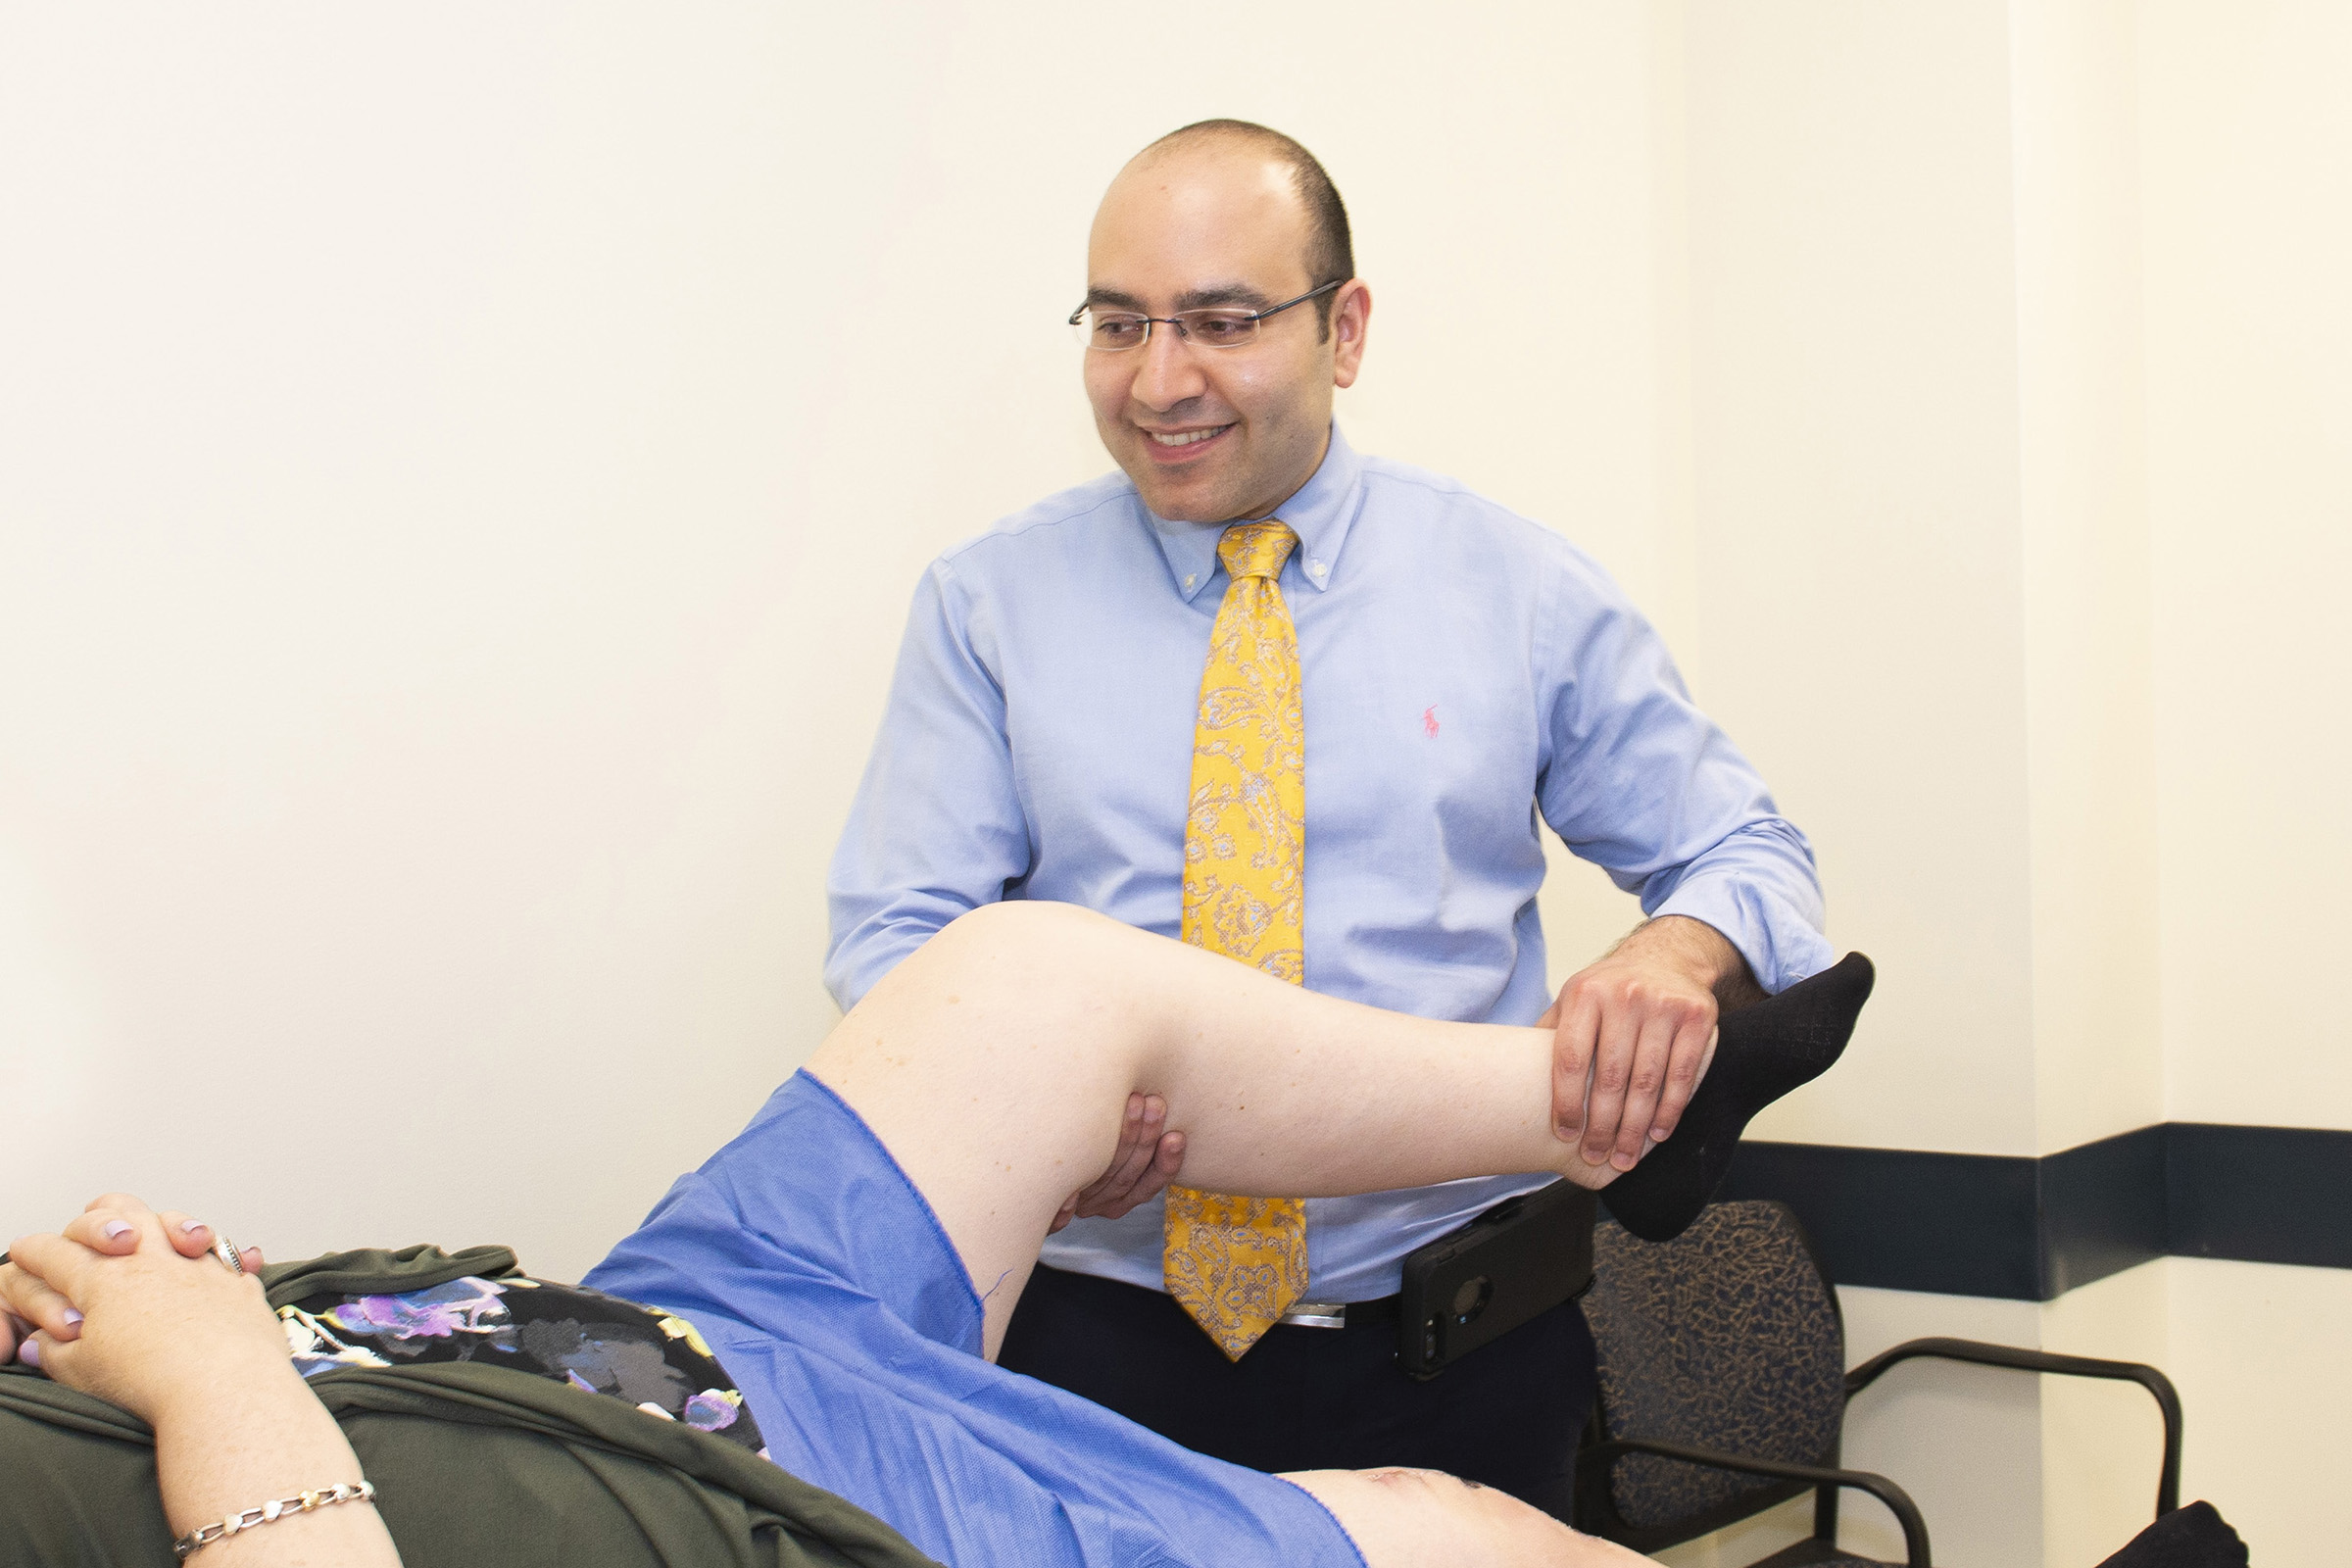 Dr. Mo Halawi examines a patient. Halawi is an orthopedic surgeon specializing in joint reconstructive surgery who joined UConn Health last fall and is spearheading same-day release for joint replacement patients. (Kristin Wallace/UConn Health Photo)